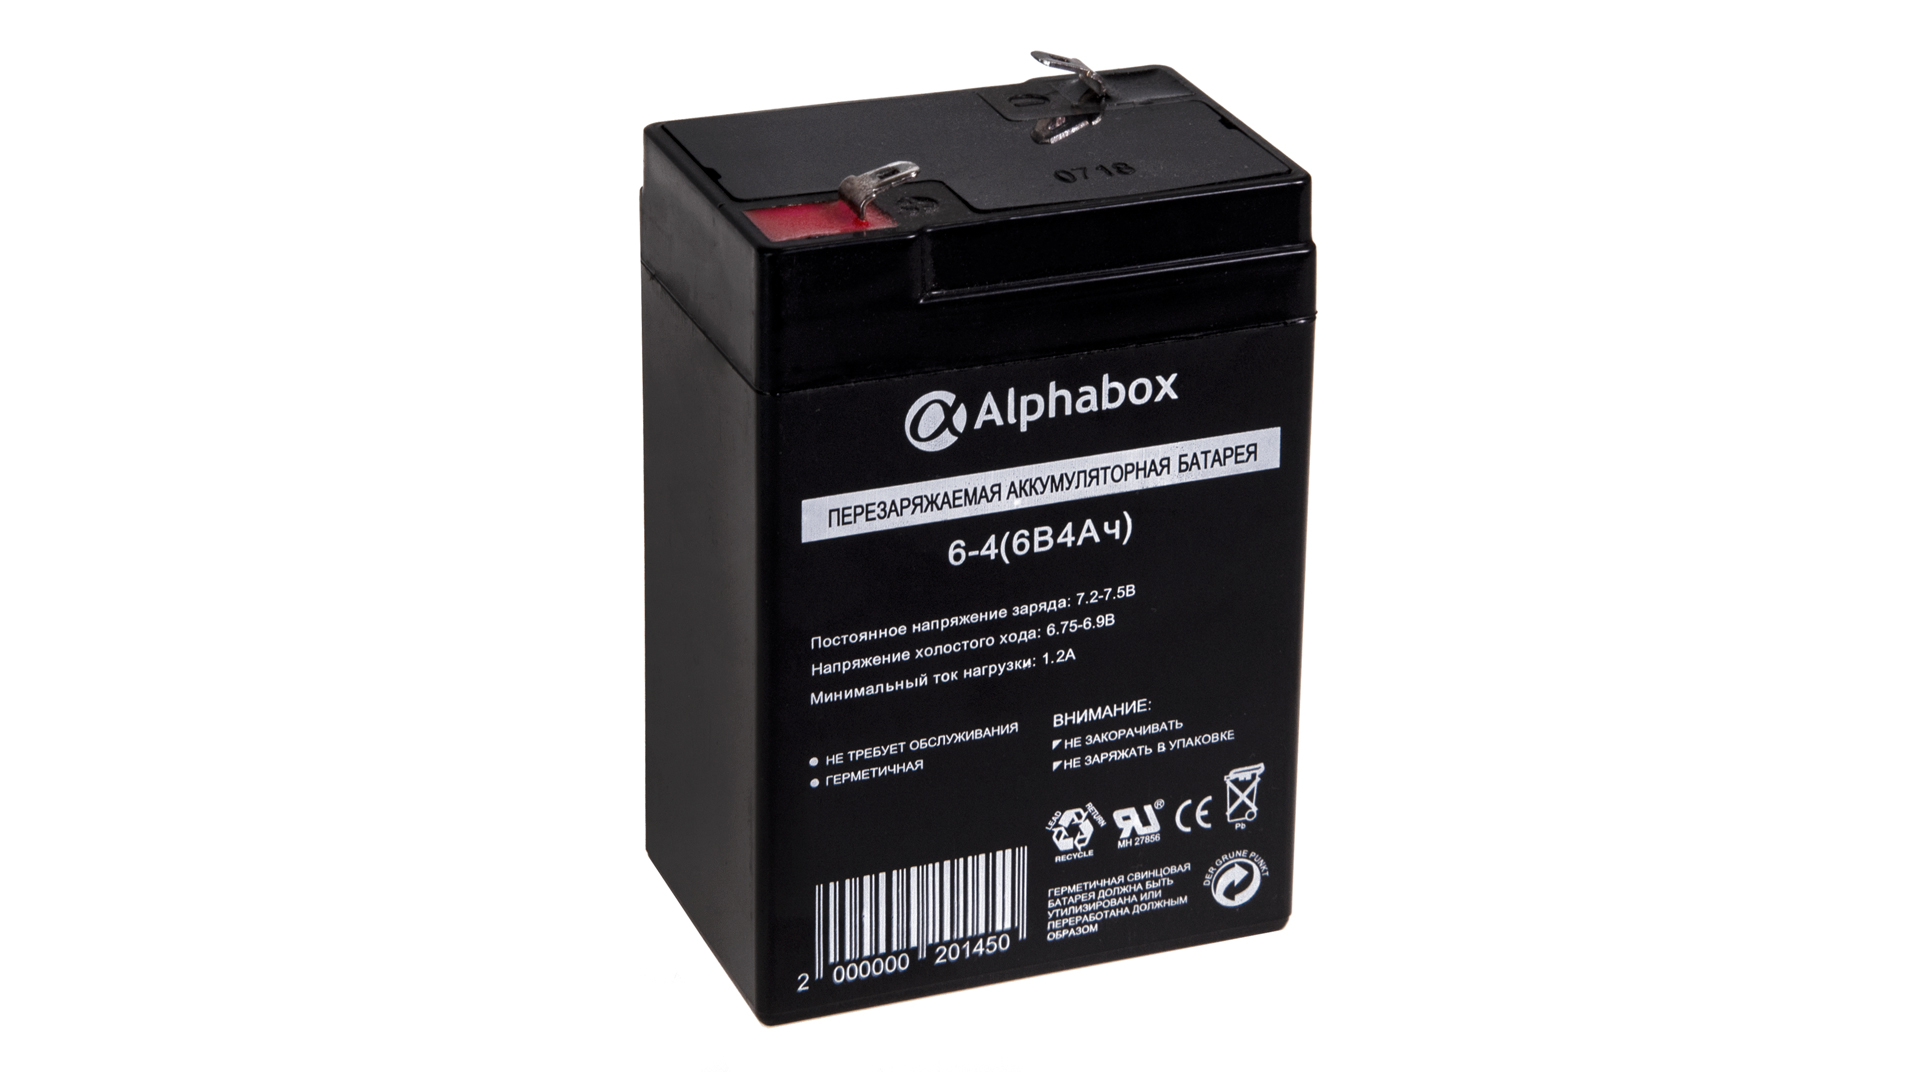 SLAB Alphabox VRLA Battery 6V/4Ah